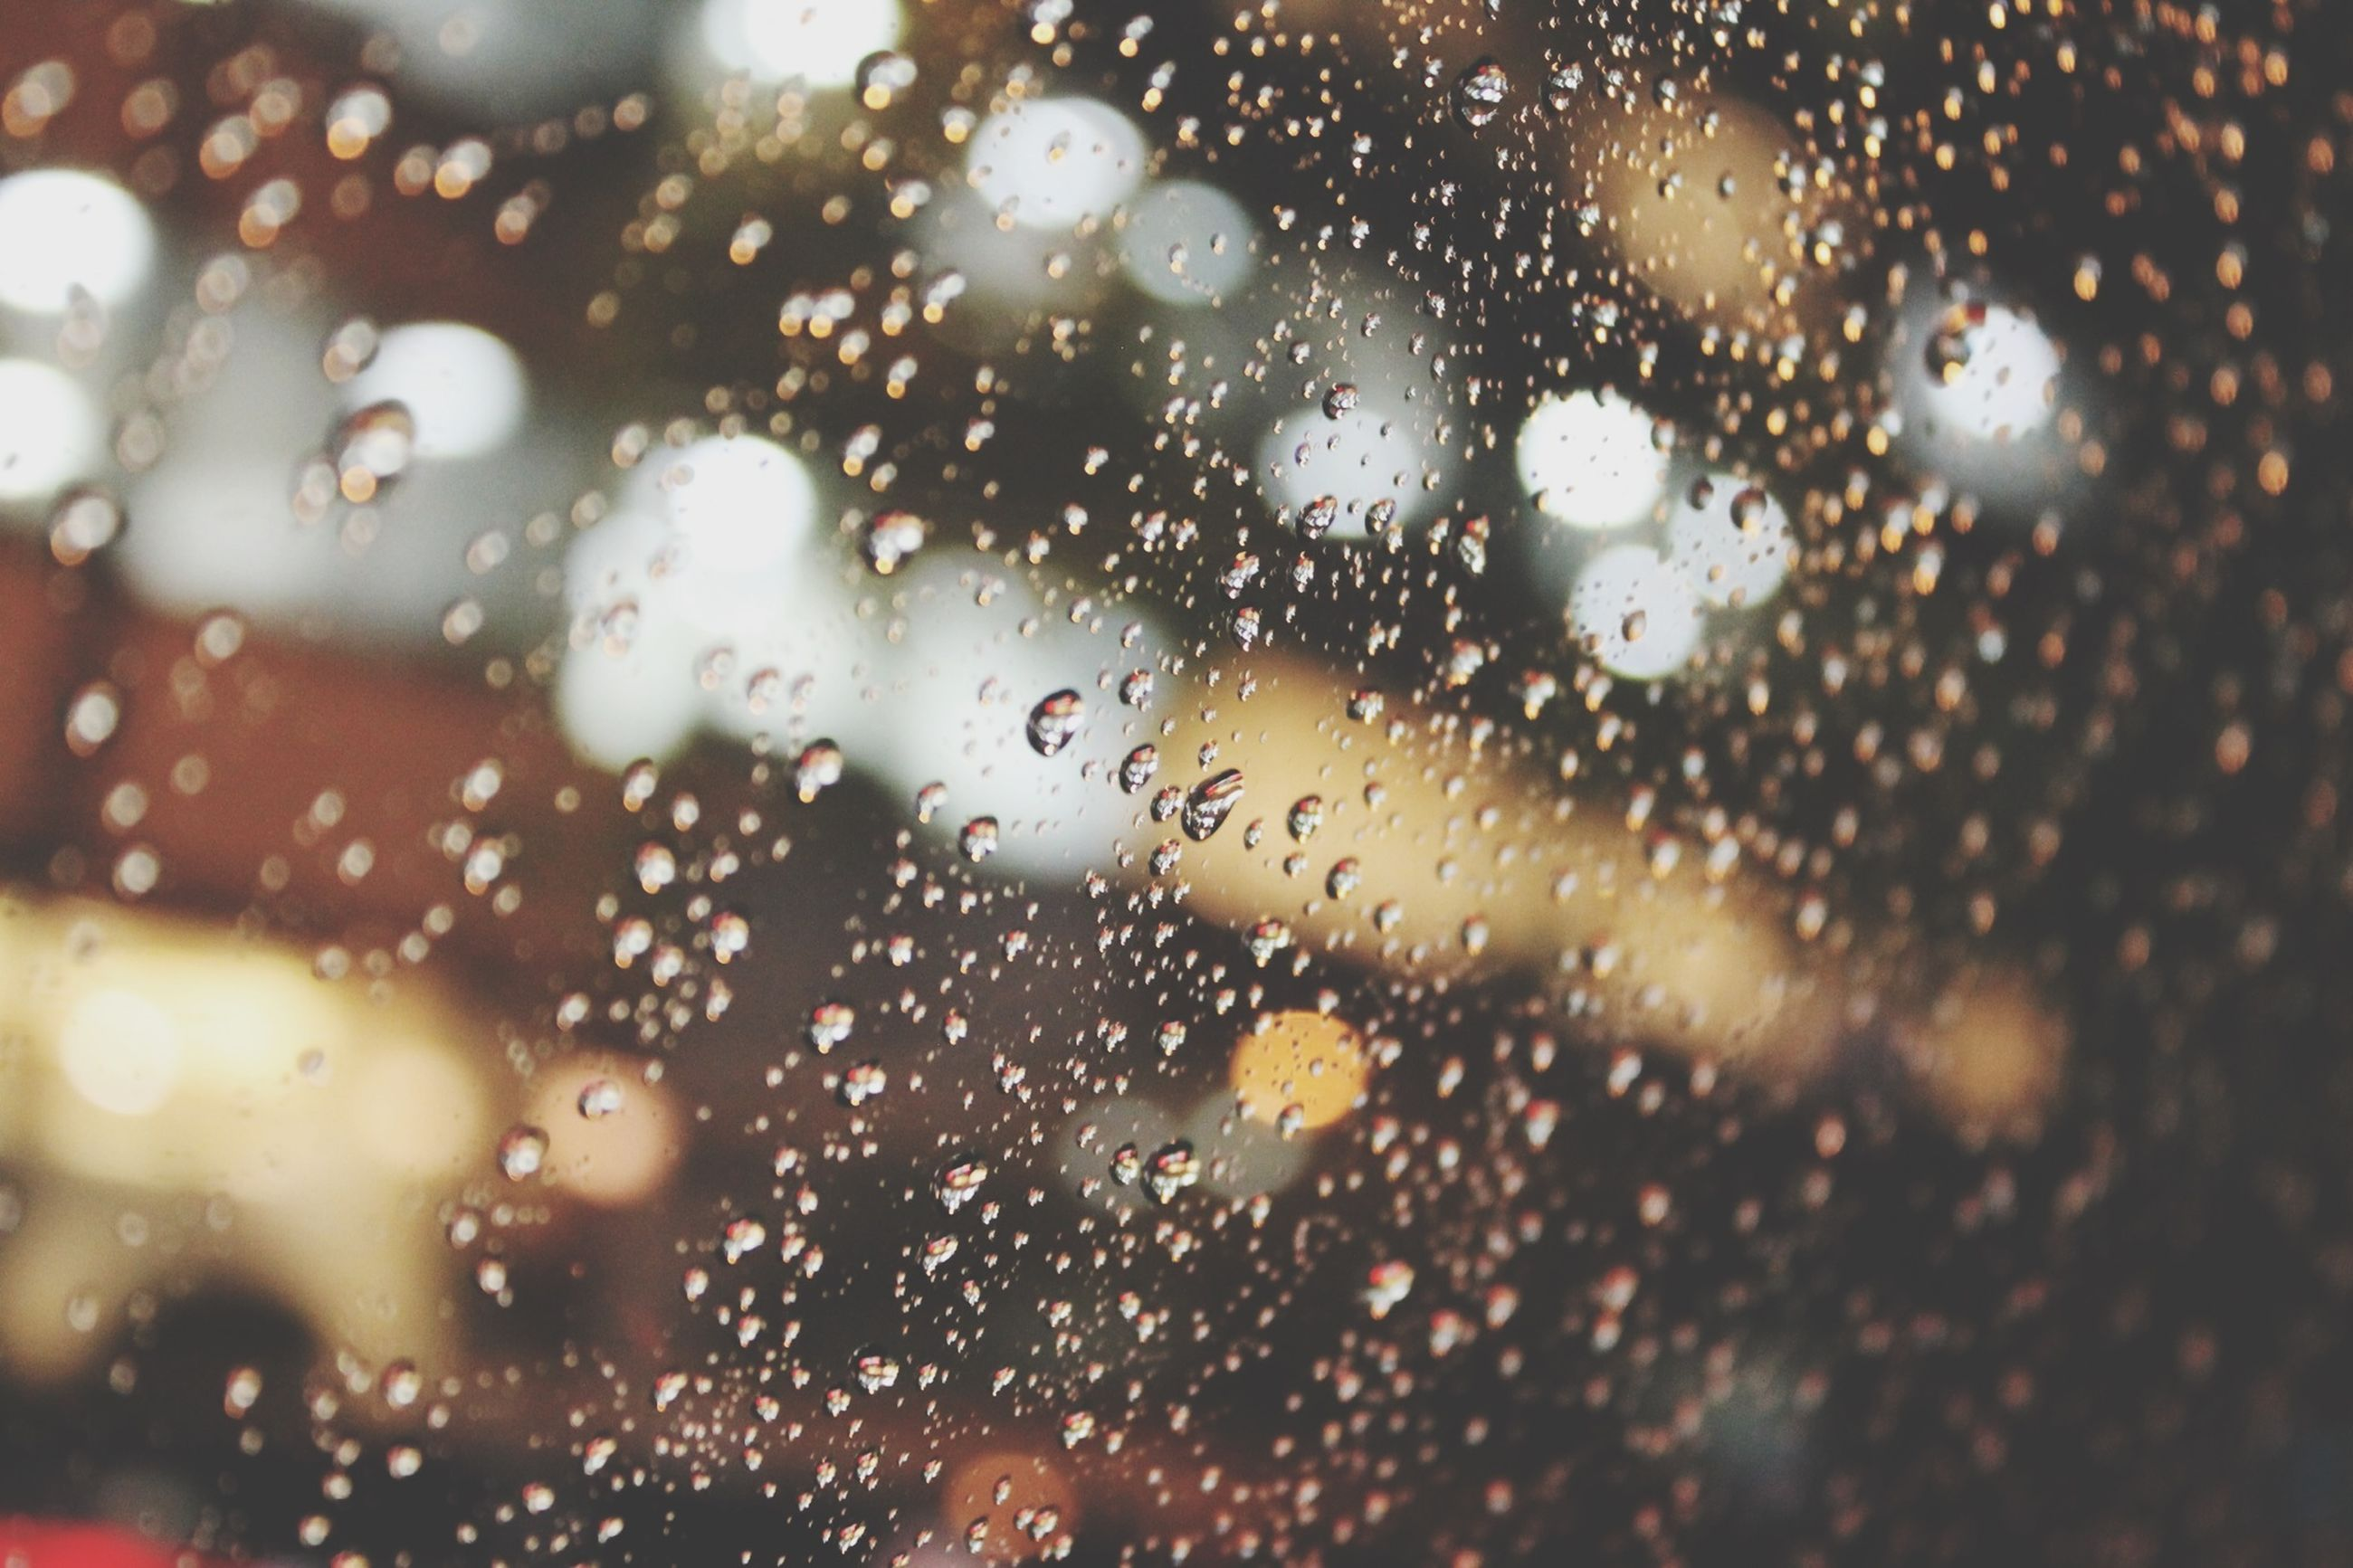 drop, window, wet, rain, indoors, transparent, full frame, glass - material, backgrounds, water, focus on foreground, raindrop, close-up, weather, season, glass, pattern, water drop, no people, droplet